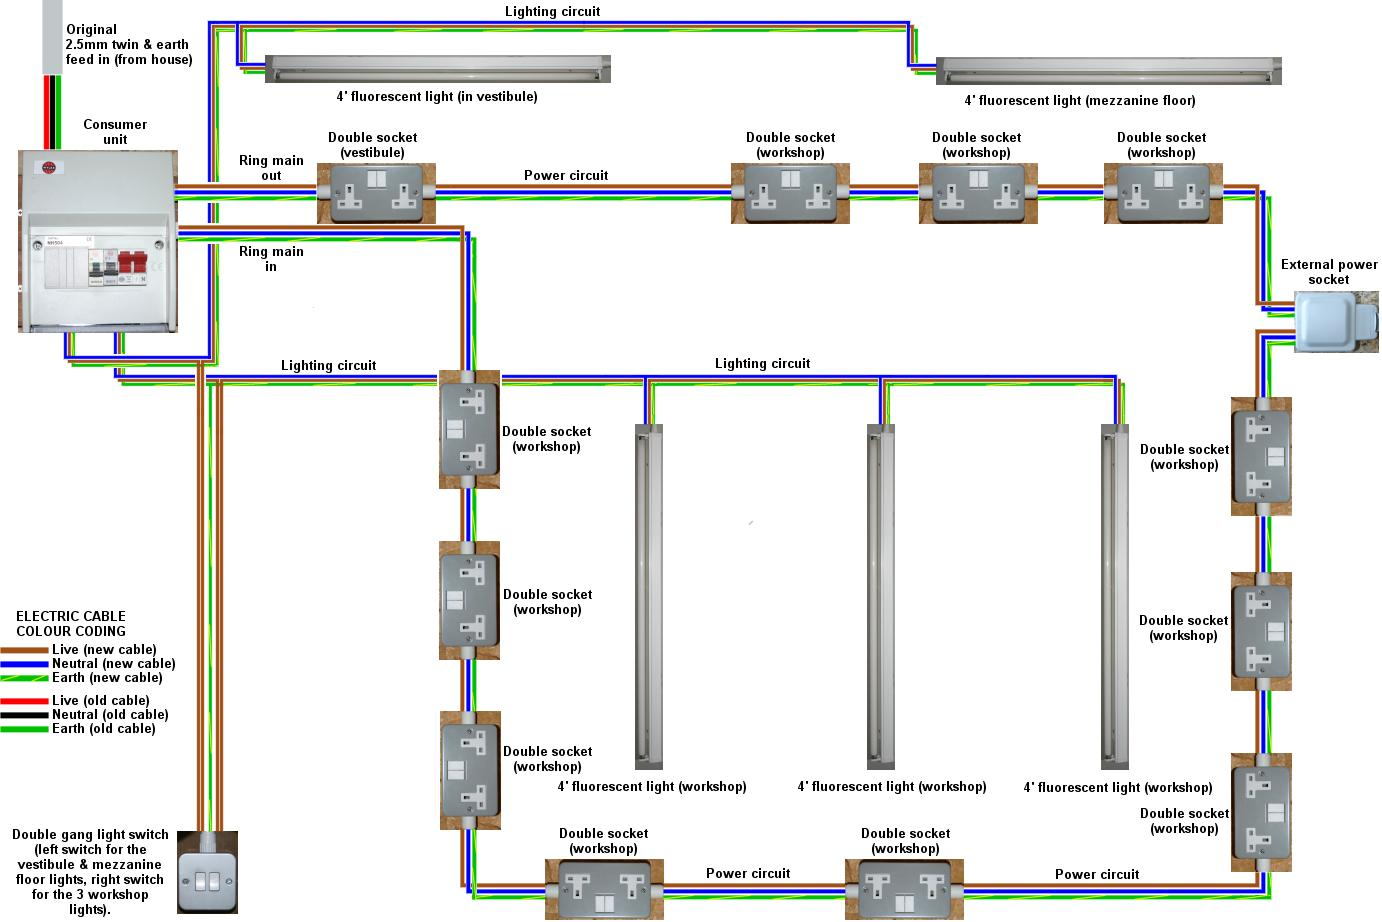 wiring diagram for garage uk schematic diagramshow to wire a garage diagram wiring diagram third level wiring diagram for furnace wiring diagram for garage uk